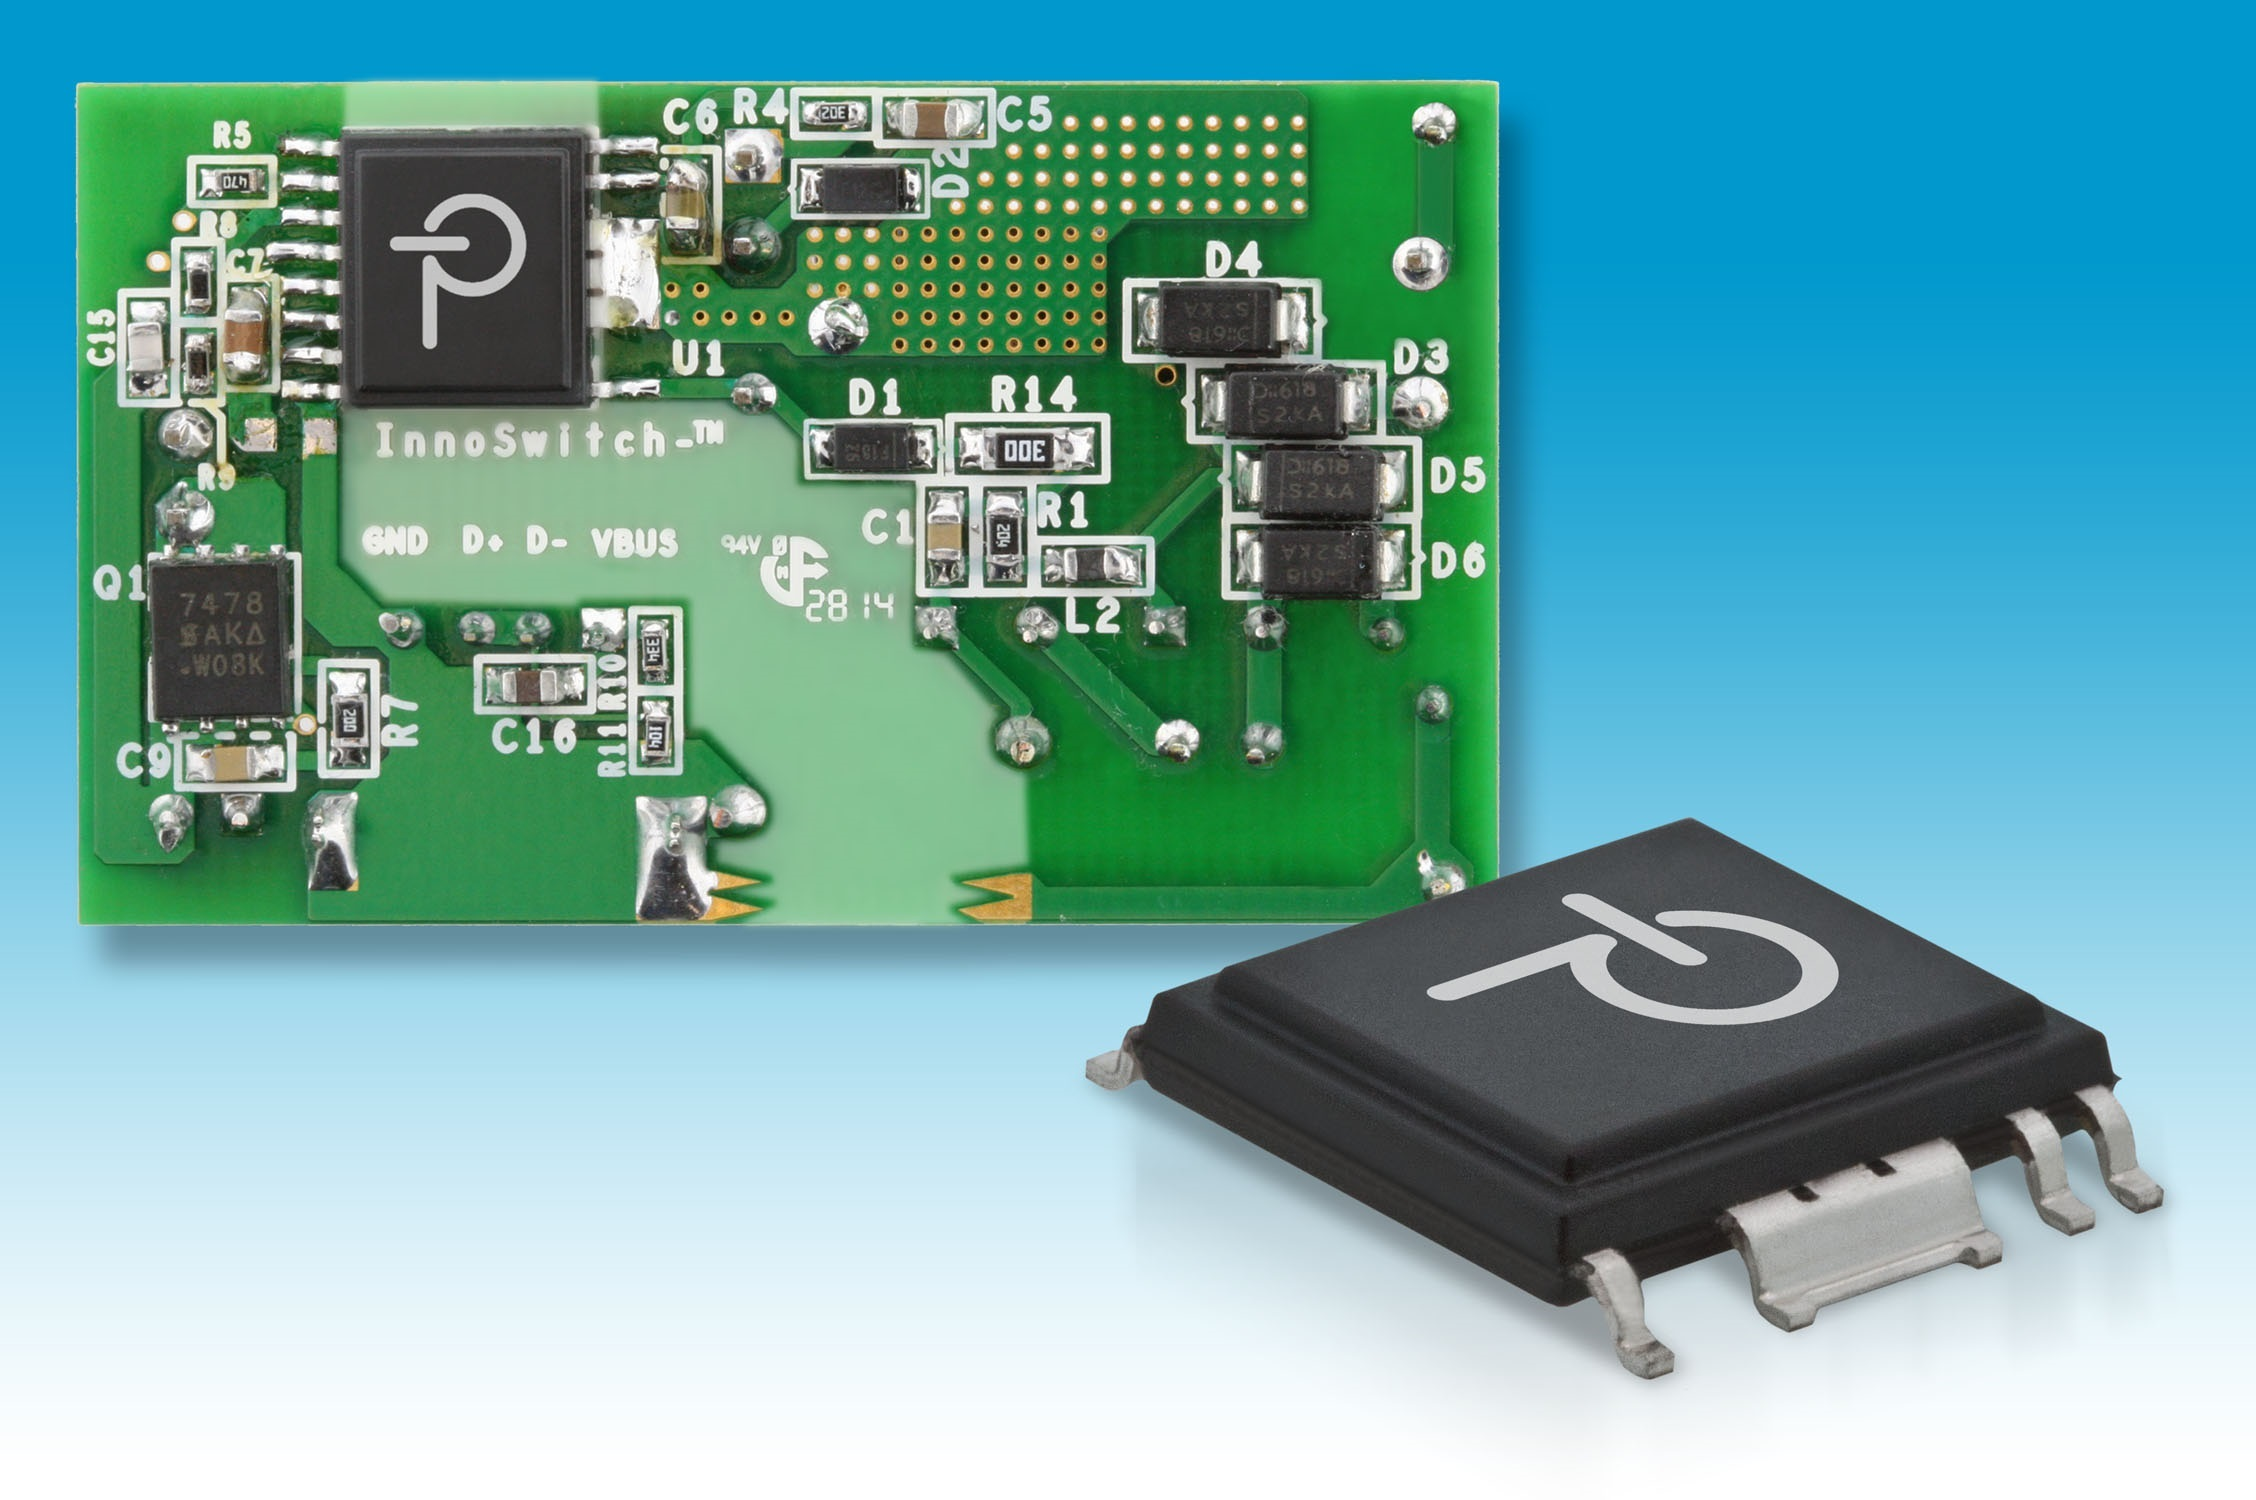 Power Electronics Europe News Integrated Circuits From Electronic Components Supplies On By Integrating Primary And Secondary Feedback The Innoswitch Ic Family Offers Best Of Both Worlds Says Integrations For Switch Mode